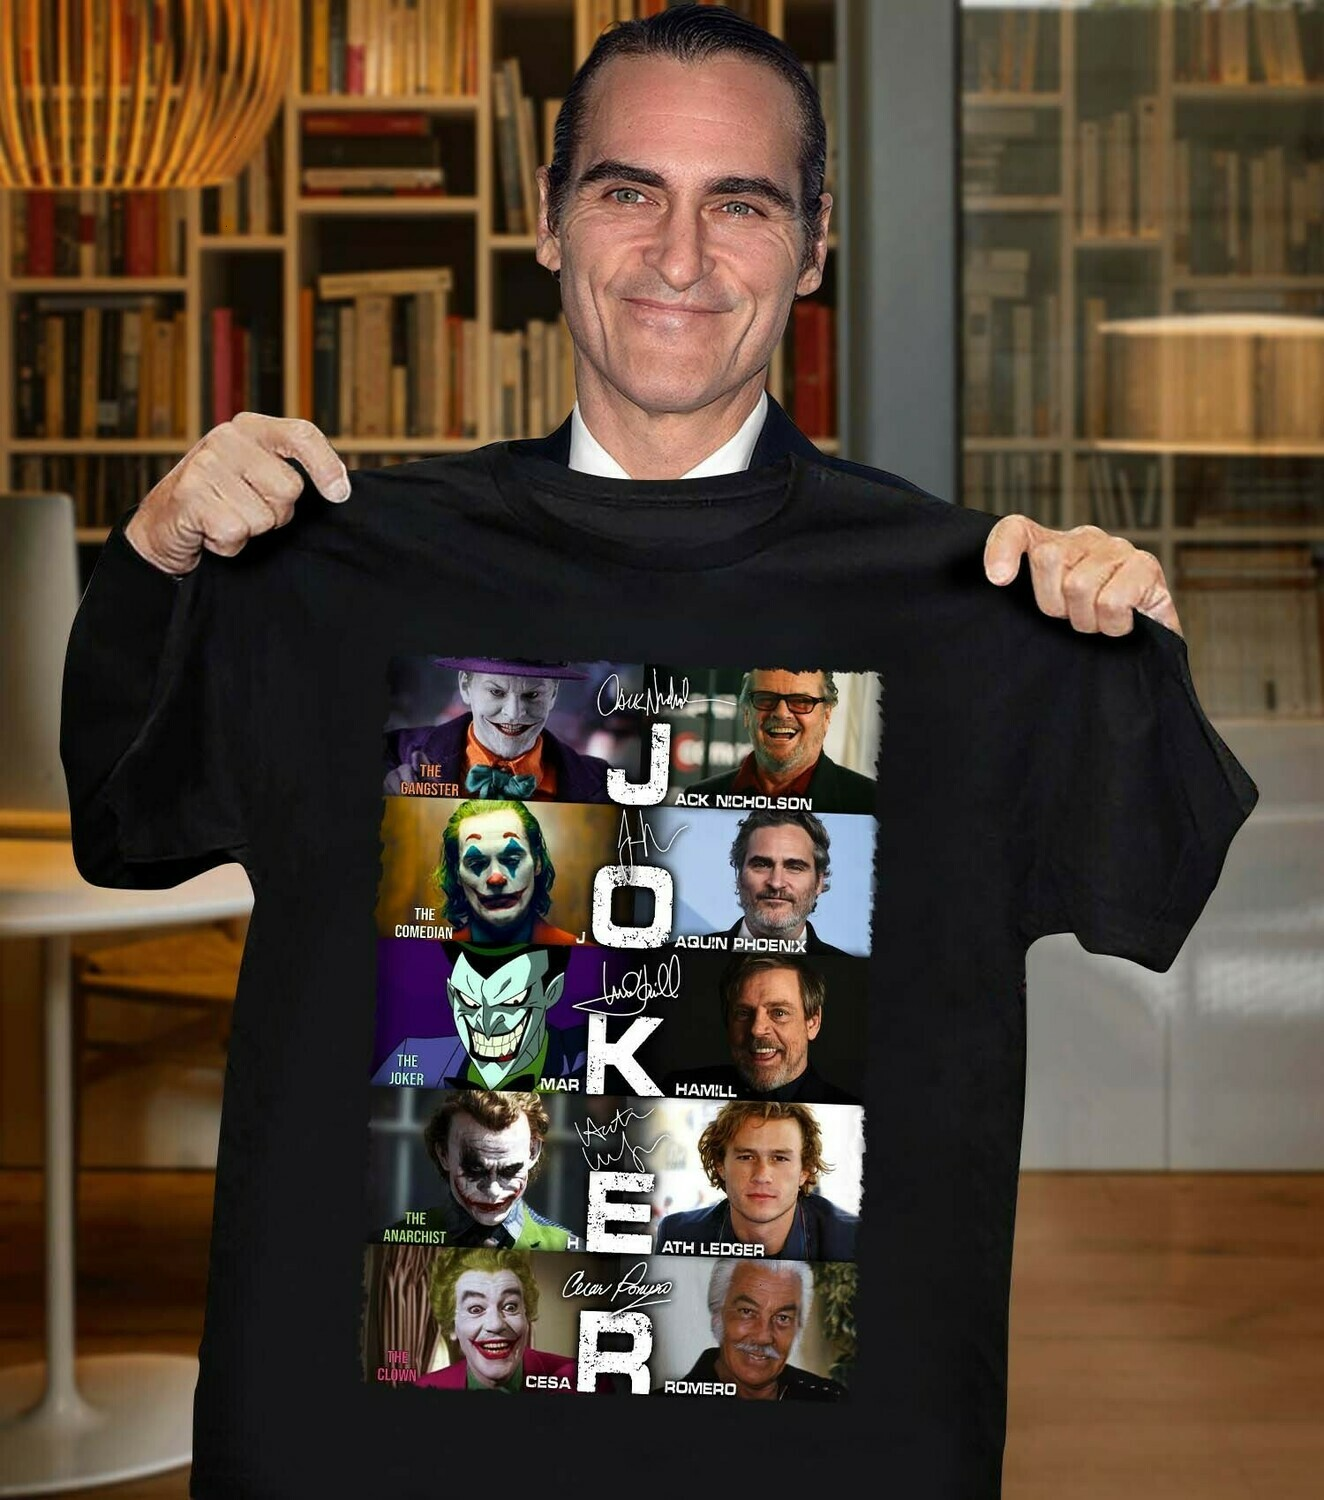 The Joker Put On A Happy Face Joaquin Phoenix Heath Ledger 60 years 1960-2020 thank you for the memories signature  Unisex T-Shirt Hoodie Sweatshirt Sweater Plus Size for Ladies Women Men Kids Youth